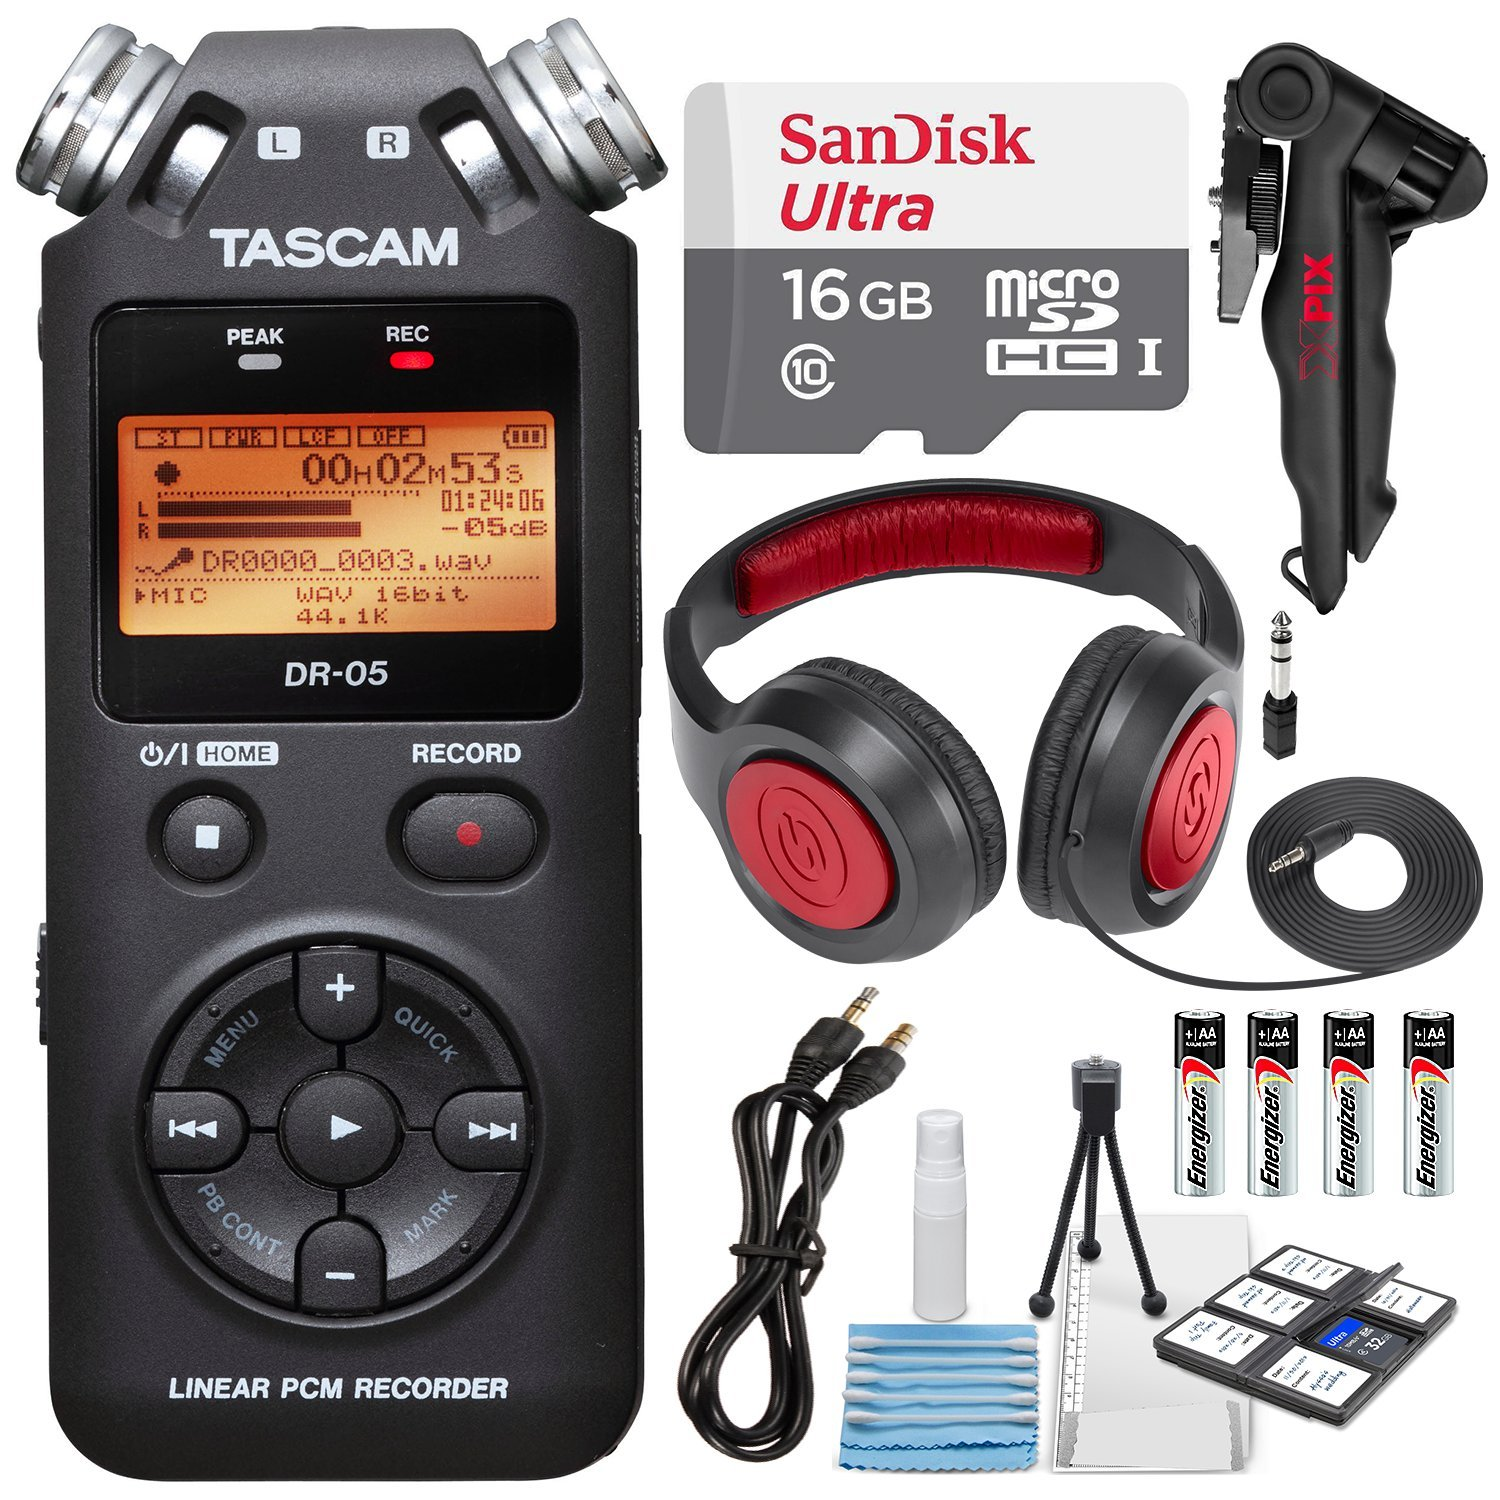 Tascam DR-05 (Version 2) Portable Handheld Digital Audio Recorder (Black) with Deluxe accessory bundle by Tascam